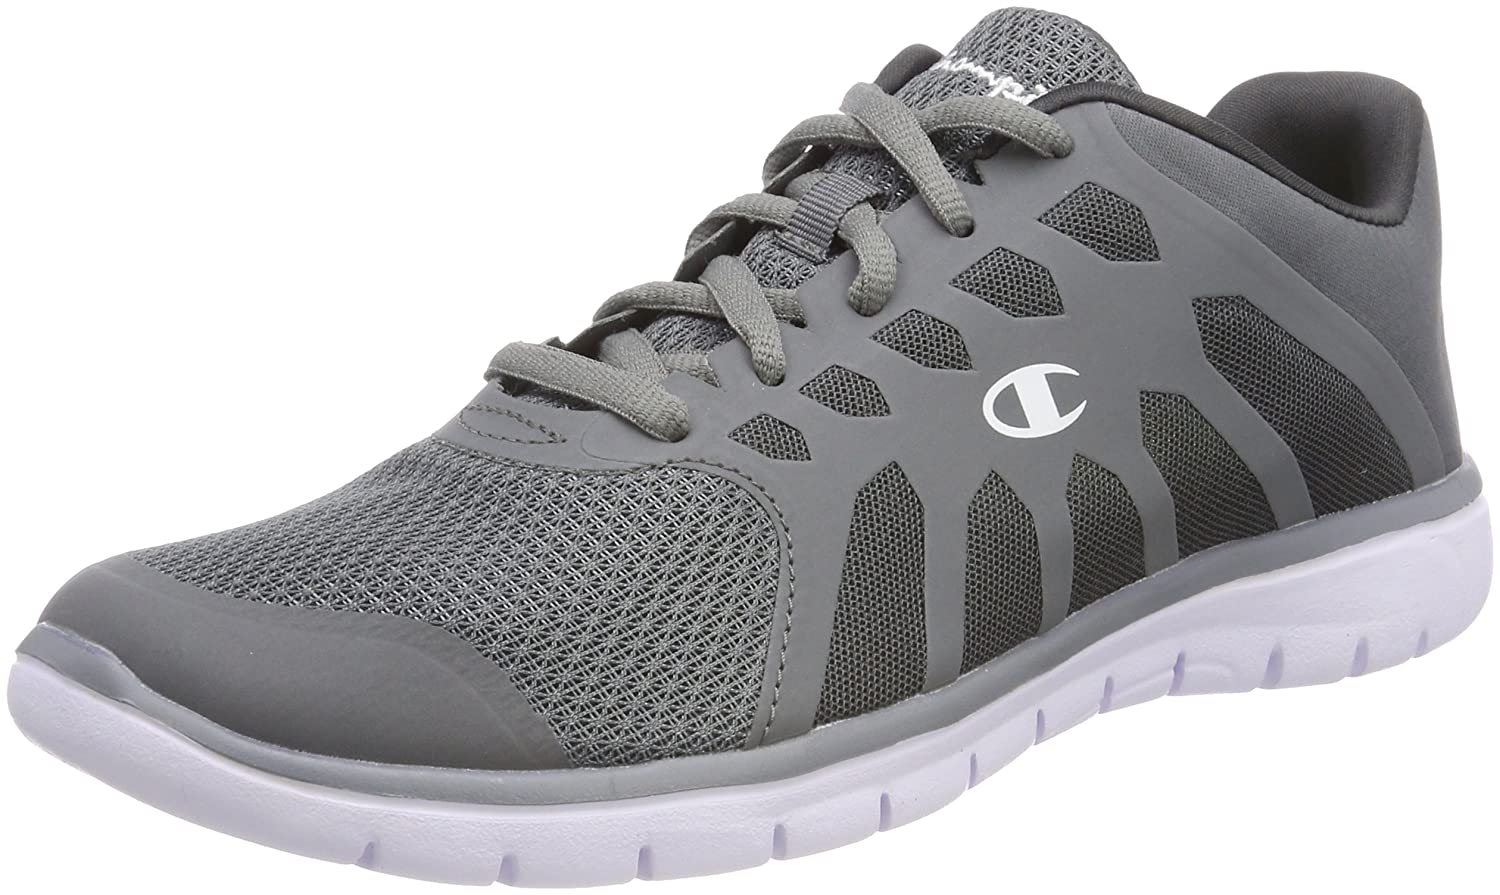 TALLA 41.5 EU. Champion Low Cut Shoe Alpha, Zapatillas de Running para Mujer